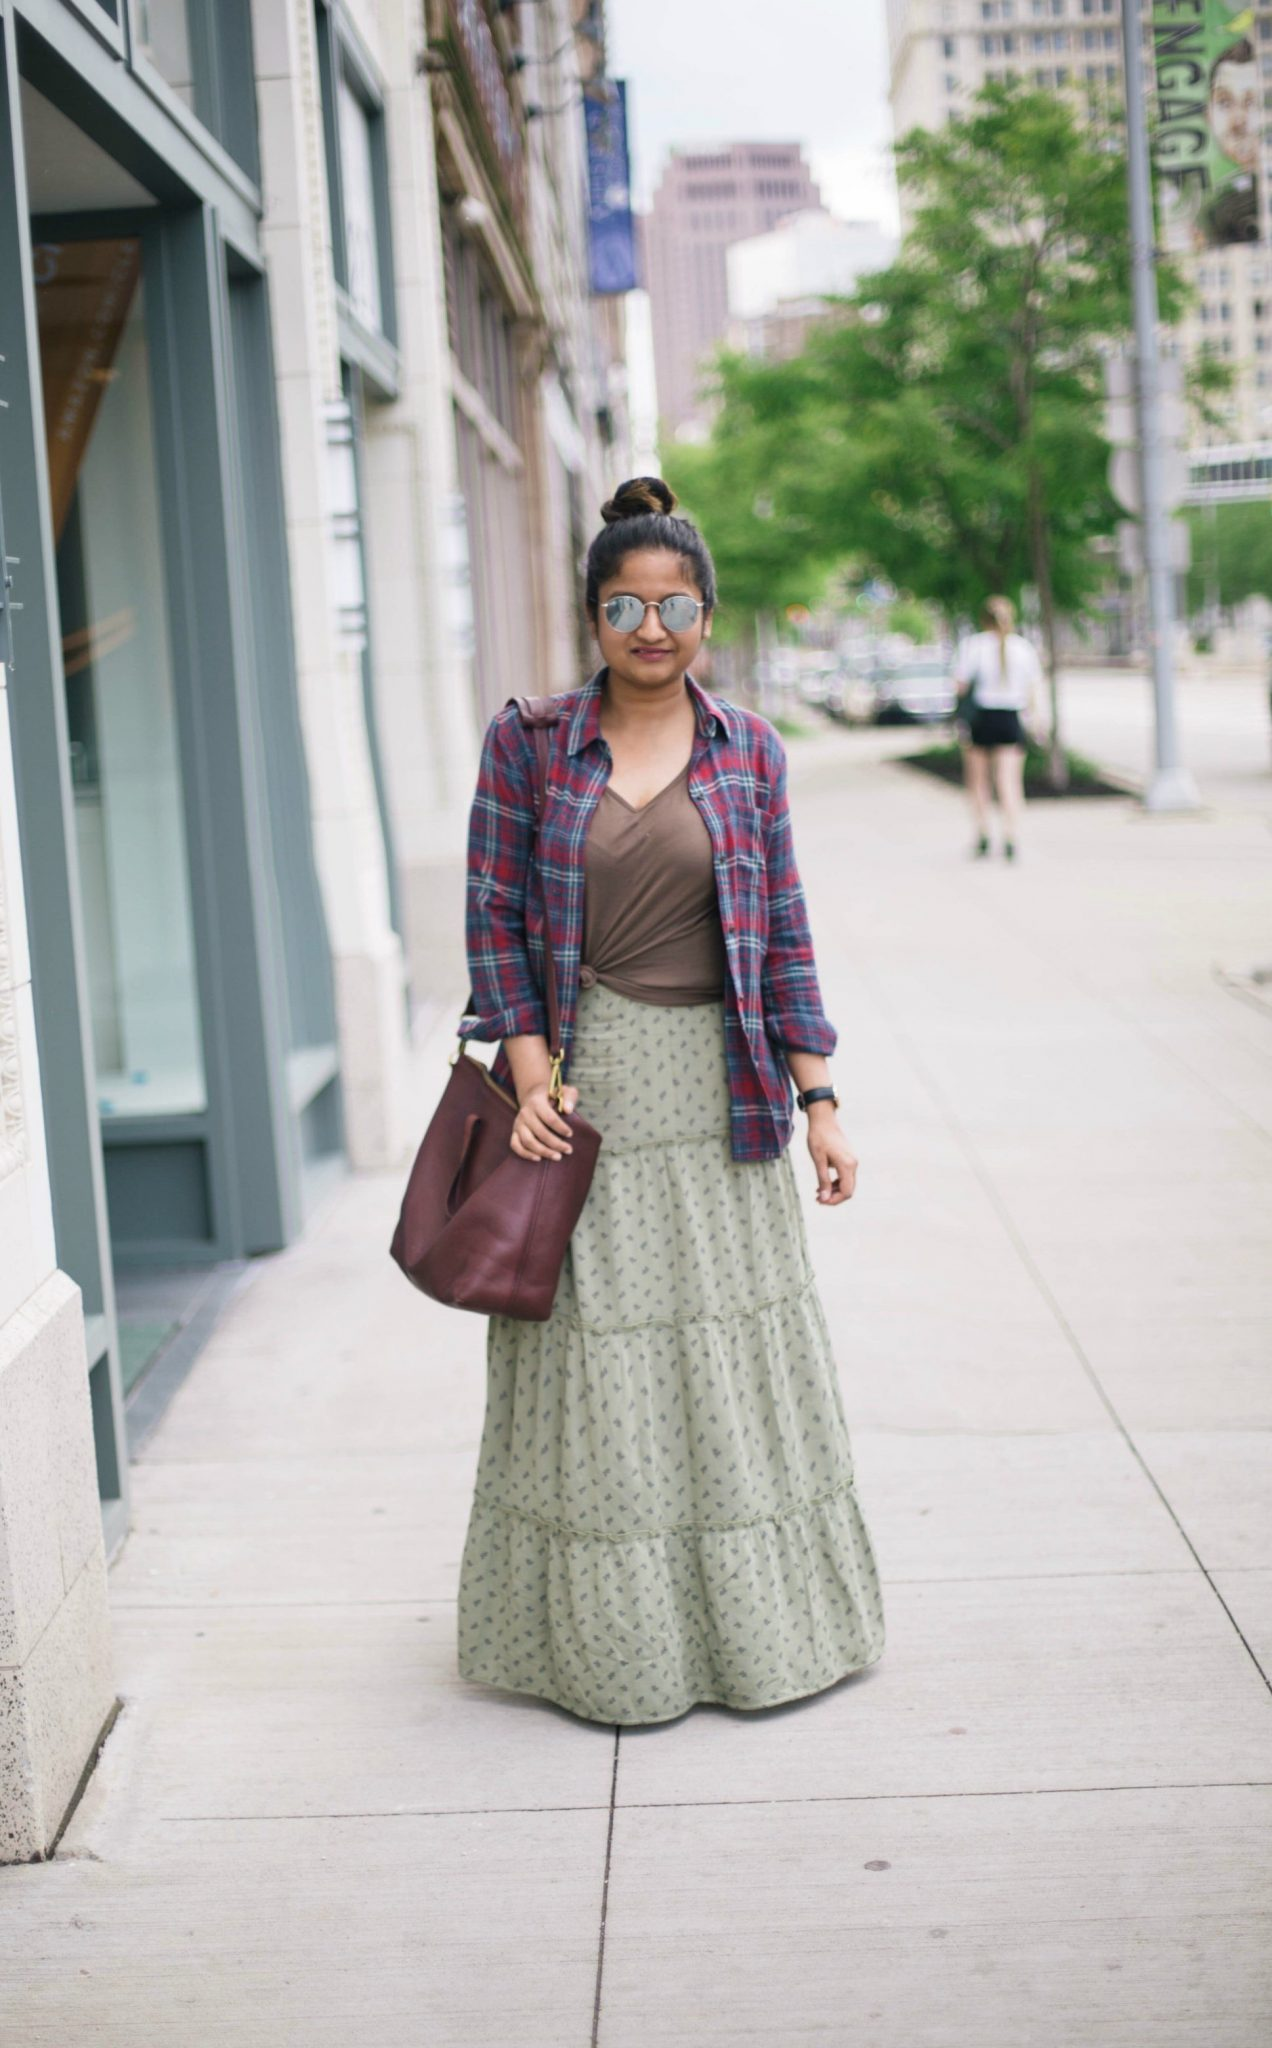 4-casual-ways-to-wear-a-target-maxi-skirt - Maxi Skirts For Petites featured by popular Ohio modest fashion blogger, Dreaming Loud